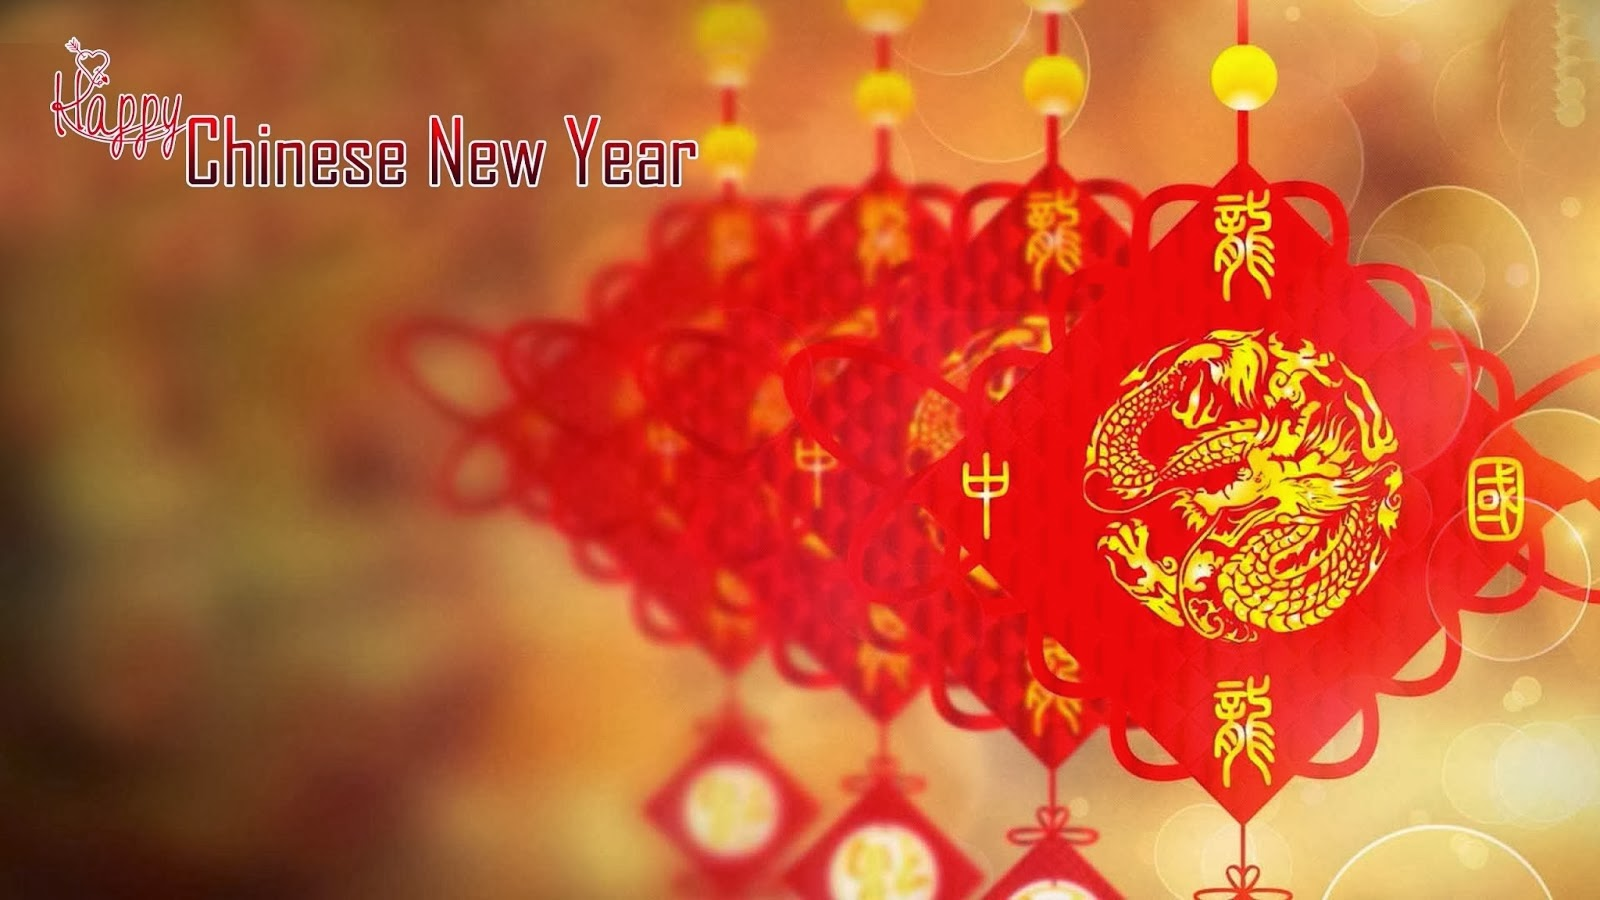 Happy Chinese New Year Wishes Cards amp Lunar New Year Quotes and . 1600 x 900.Lunar New Year Ecard